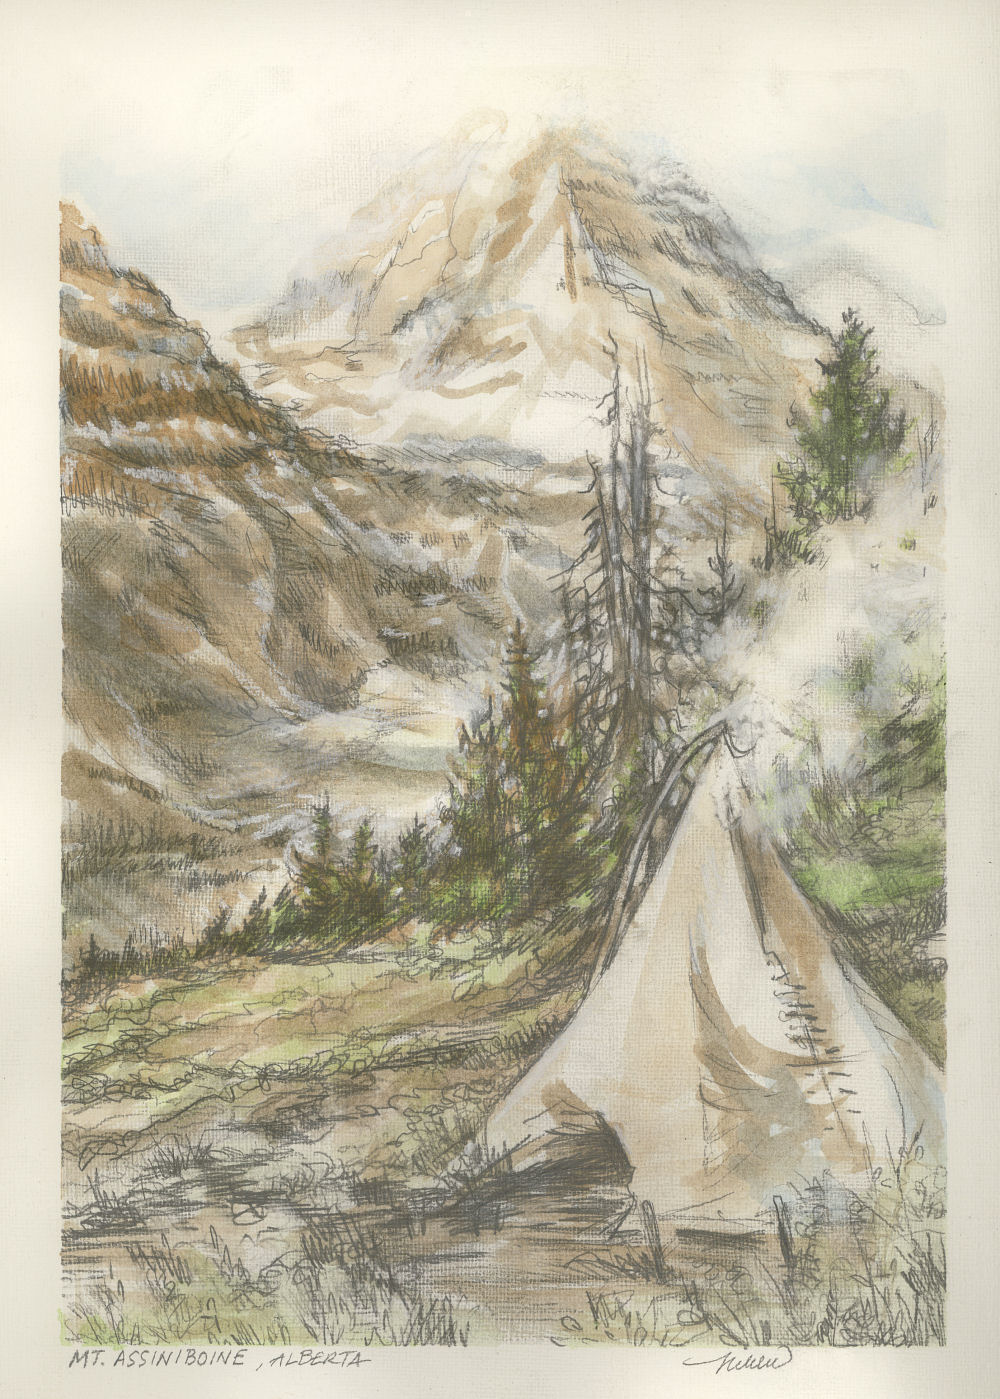 "Mt. Assiniboine, Alberta 12H x 9W inch watercolor and graphite study from antique books of hand-colored ""Vandyck Photogravures"" of Canadian Rocky Mountains scenery, cards only"